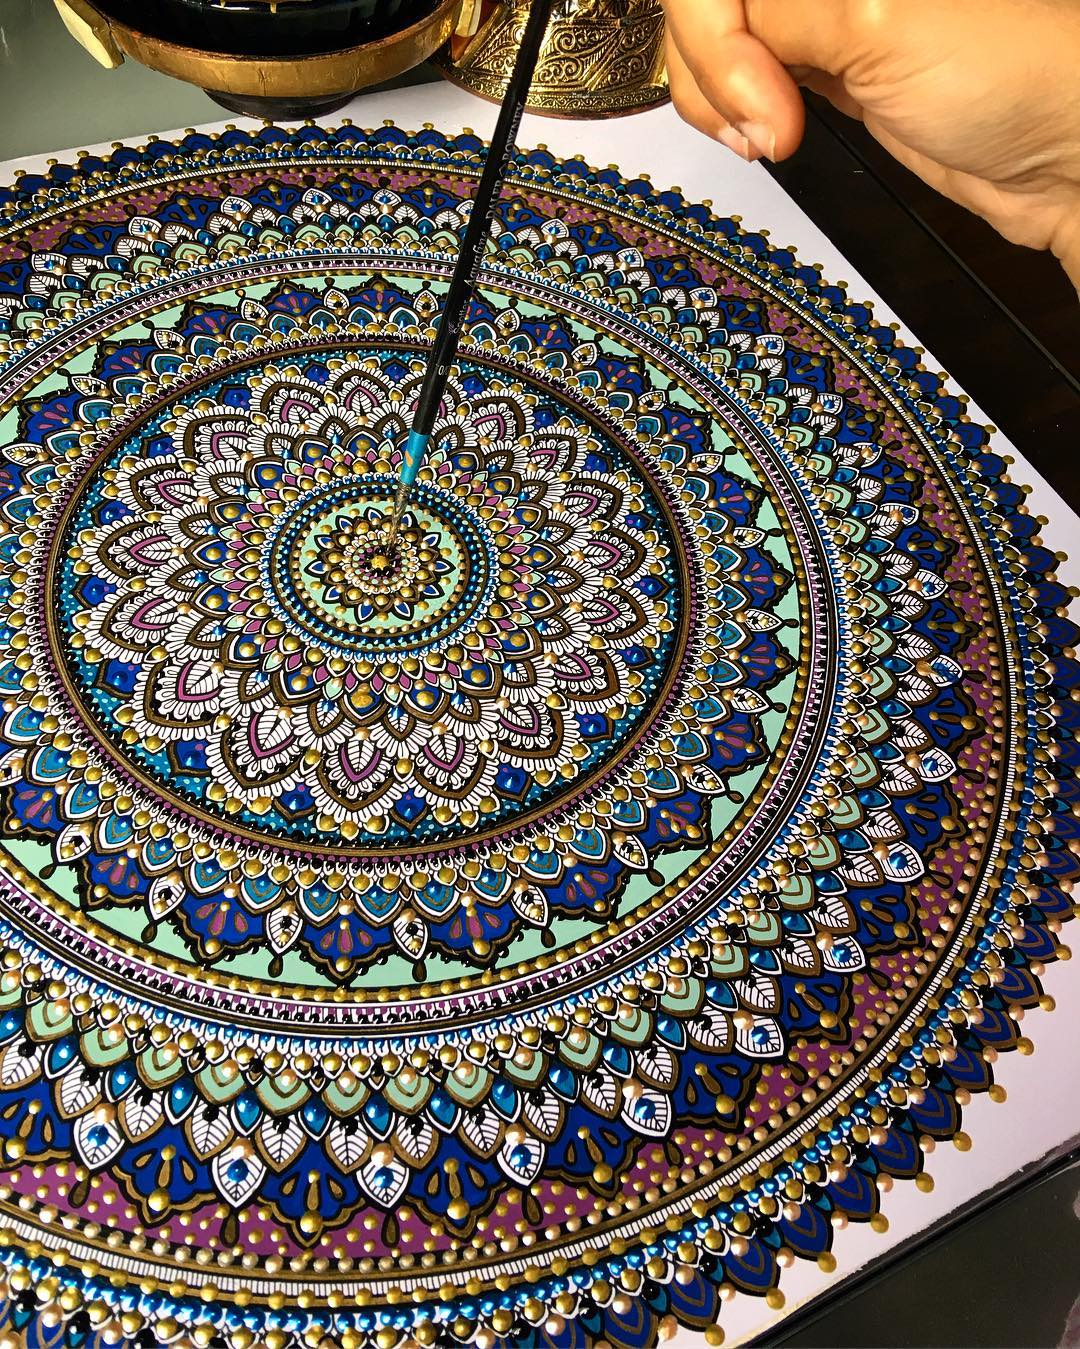 New Painted Mandalas Gilded with Gold Leaf by Artist Asmahan Rose Mosleh (8 pics)